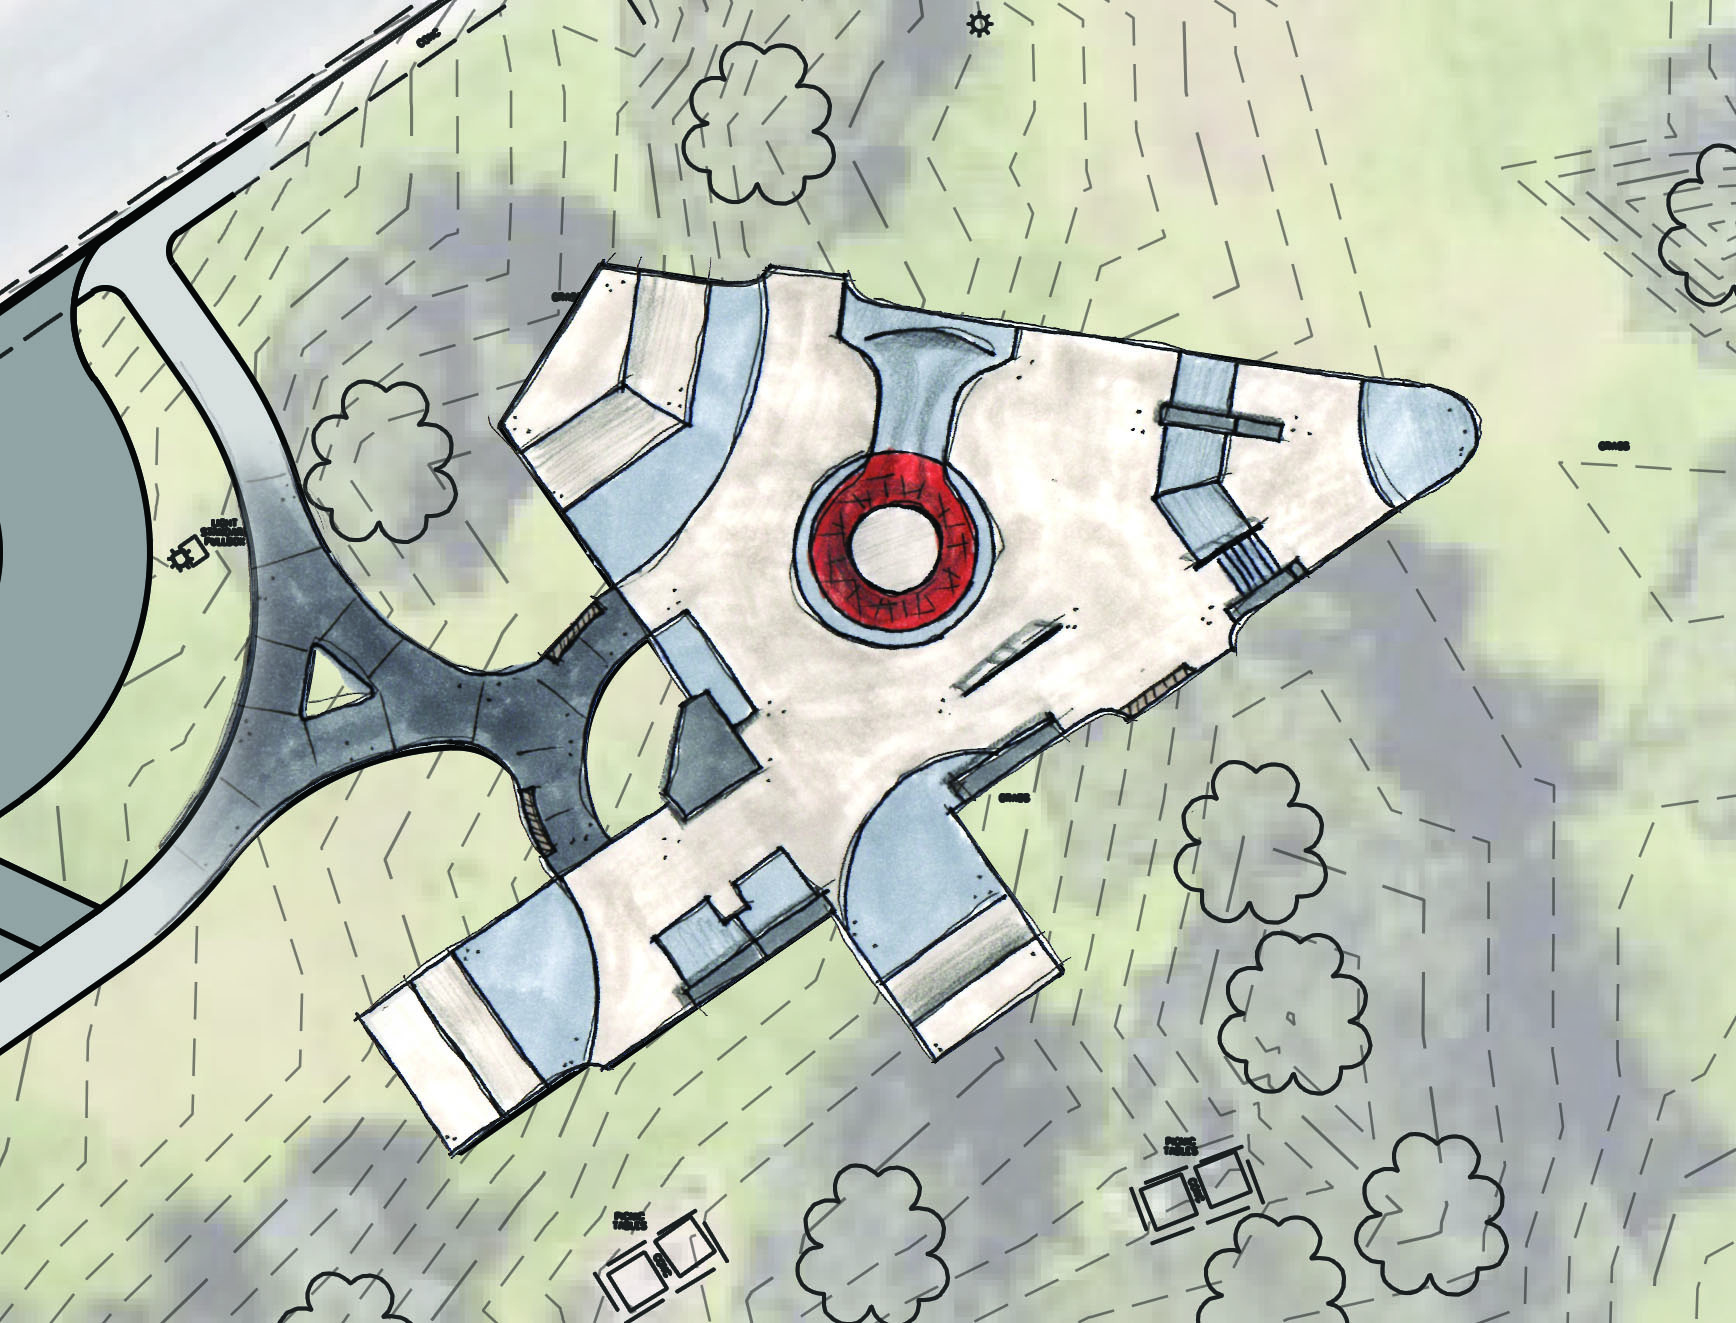 Option #1 - Open street plaza with central volcano feature